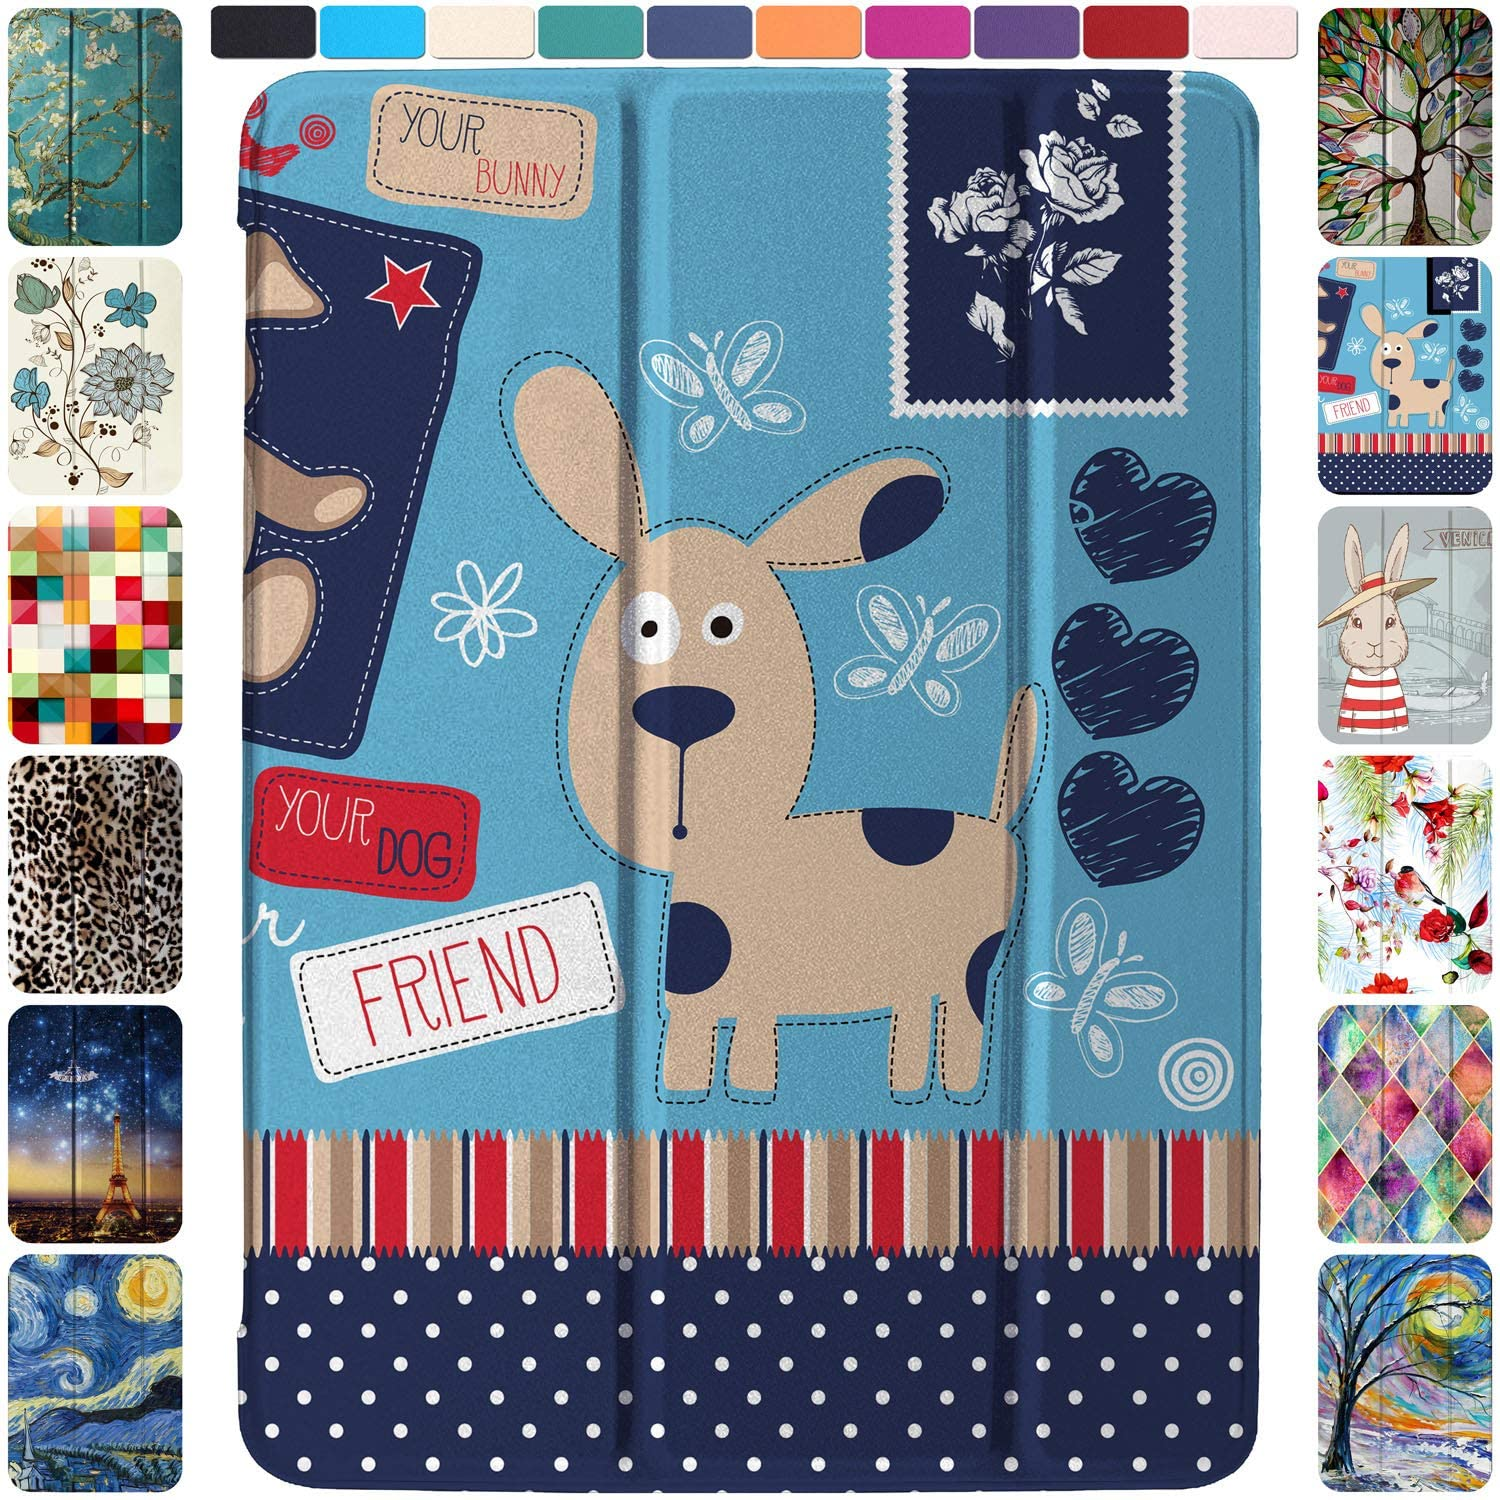 DuraSafe Cases for iPad Mini 1st Gen/Mini 2nd Gen/Mini 3rd Gen - 7.9 MGNV2LL/A MGYE2LL/A MGNR2LL/A ME276LL/A Ultra Slim Supportive Classic Case with Adjustable Stand Feature - Puppy Friend